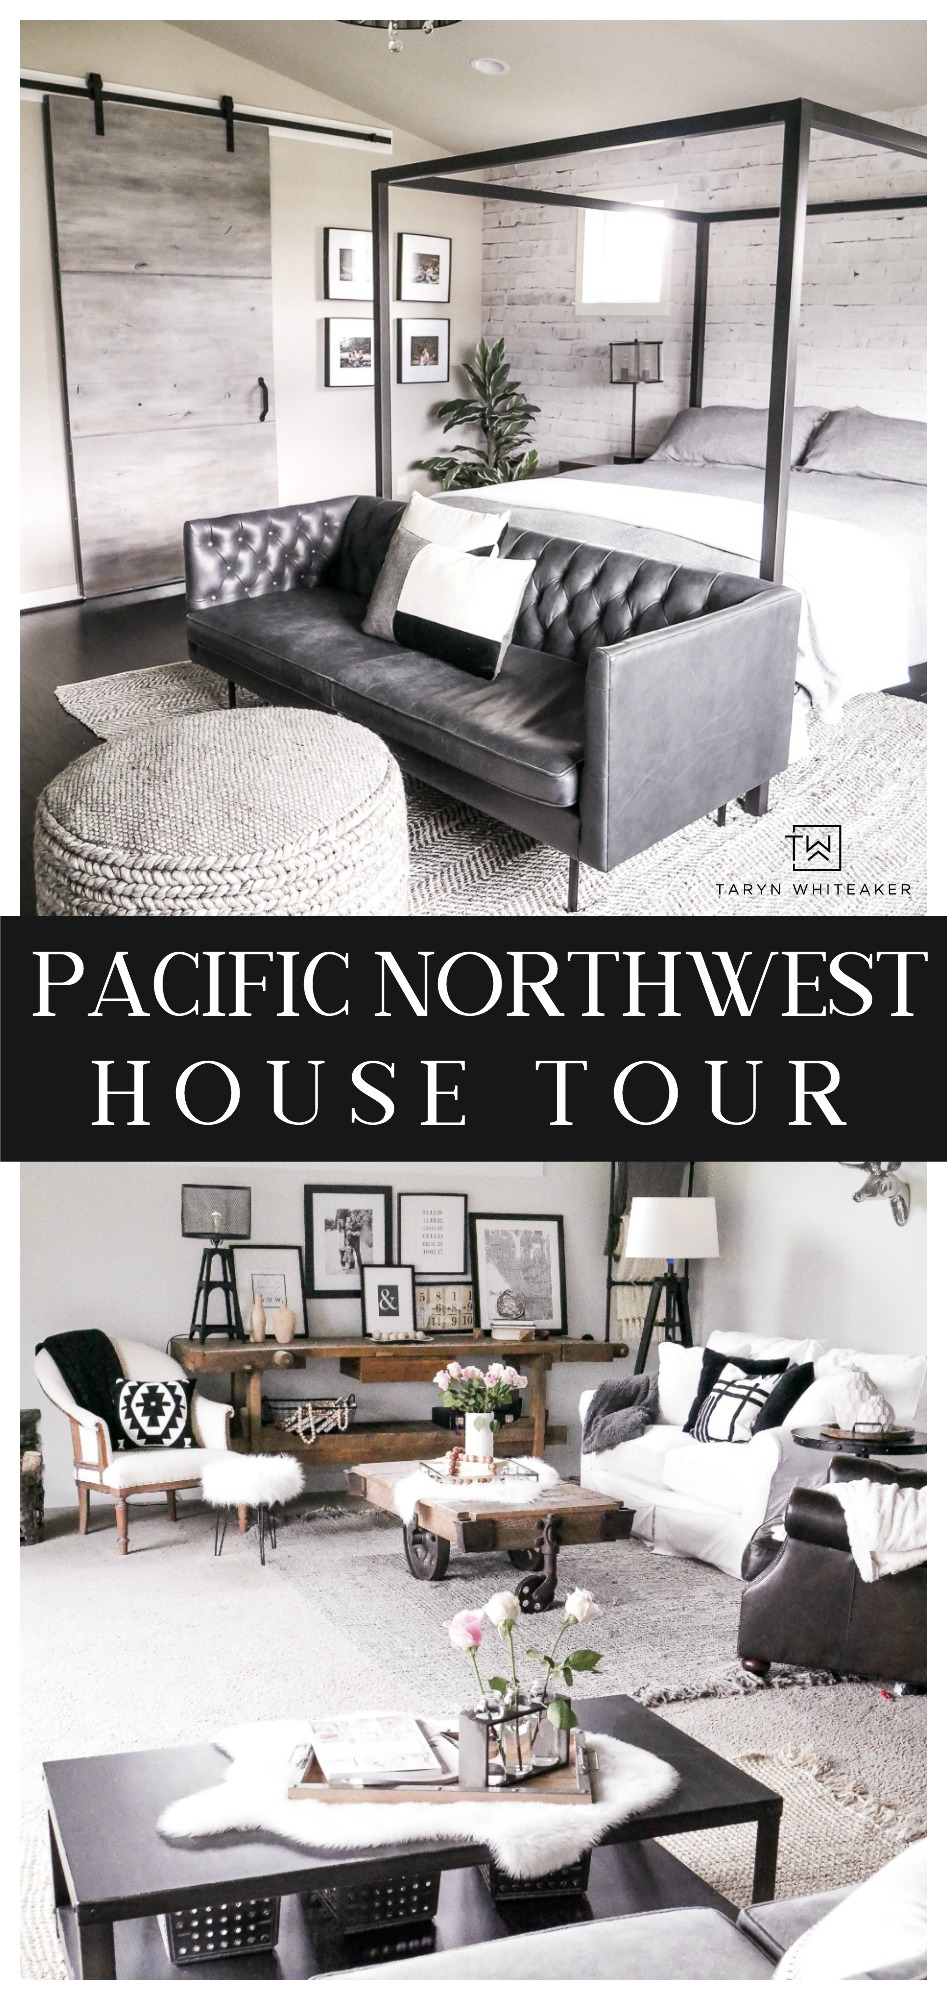 Tour this rustic modern Pacific Northwest Home filled with modern lines and natural elements.